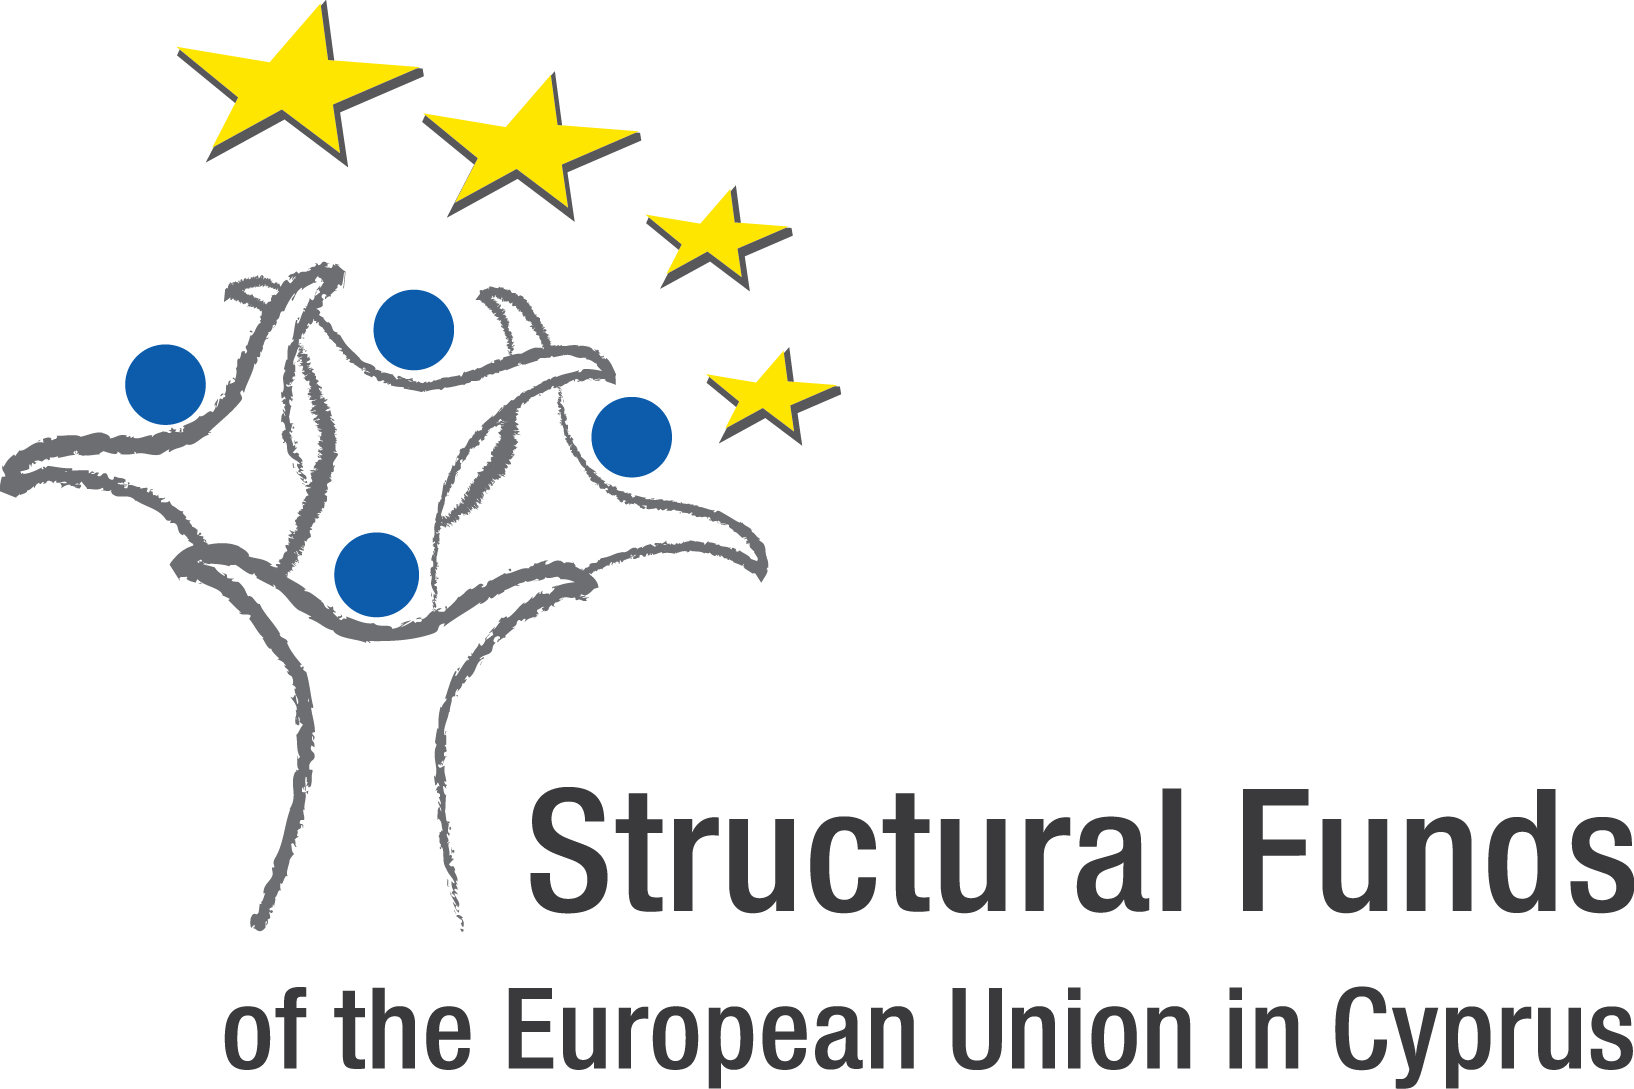 Structural Funds